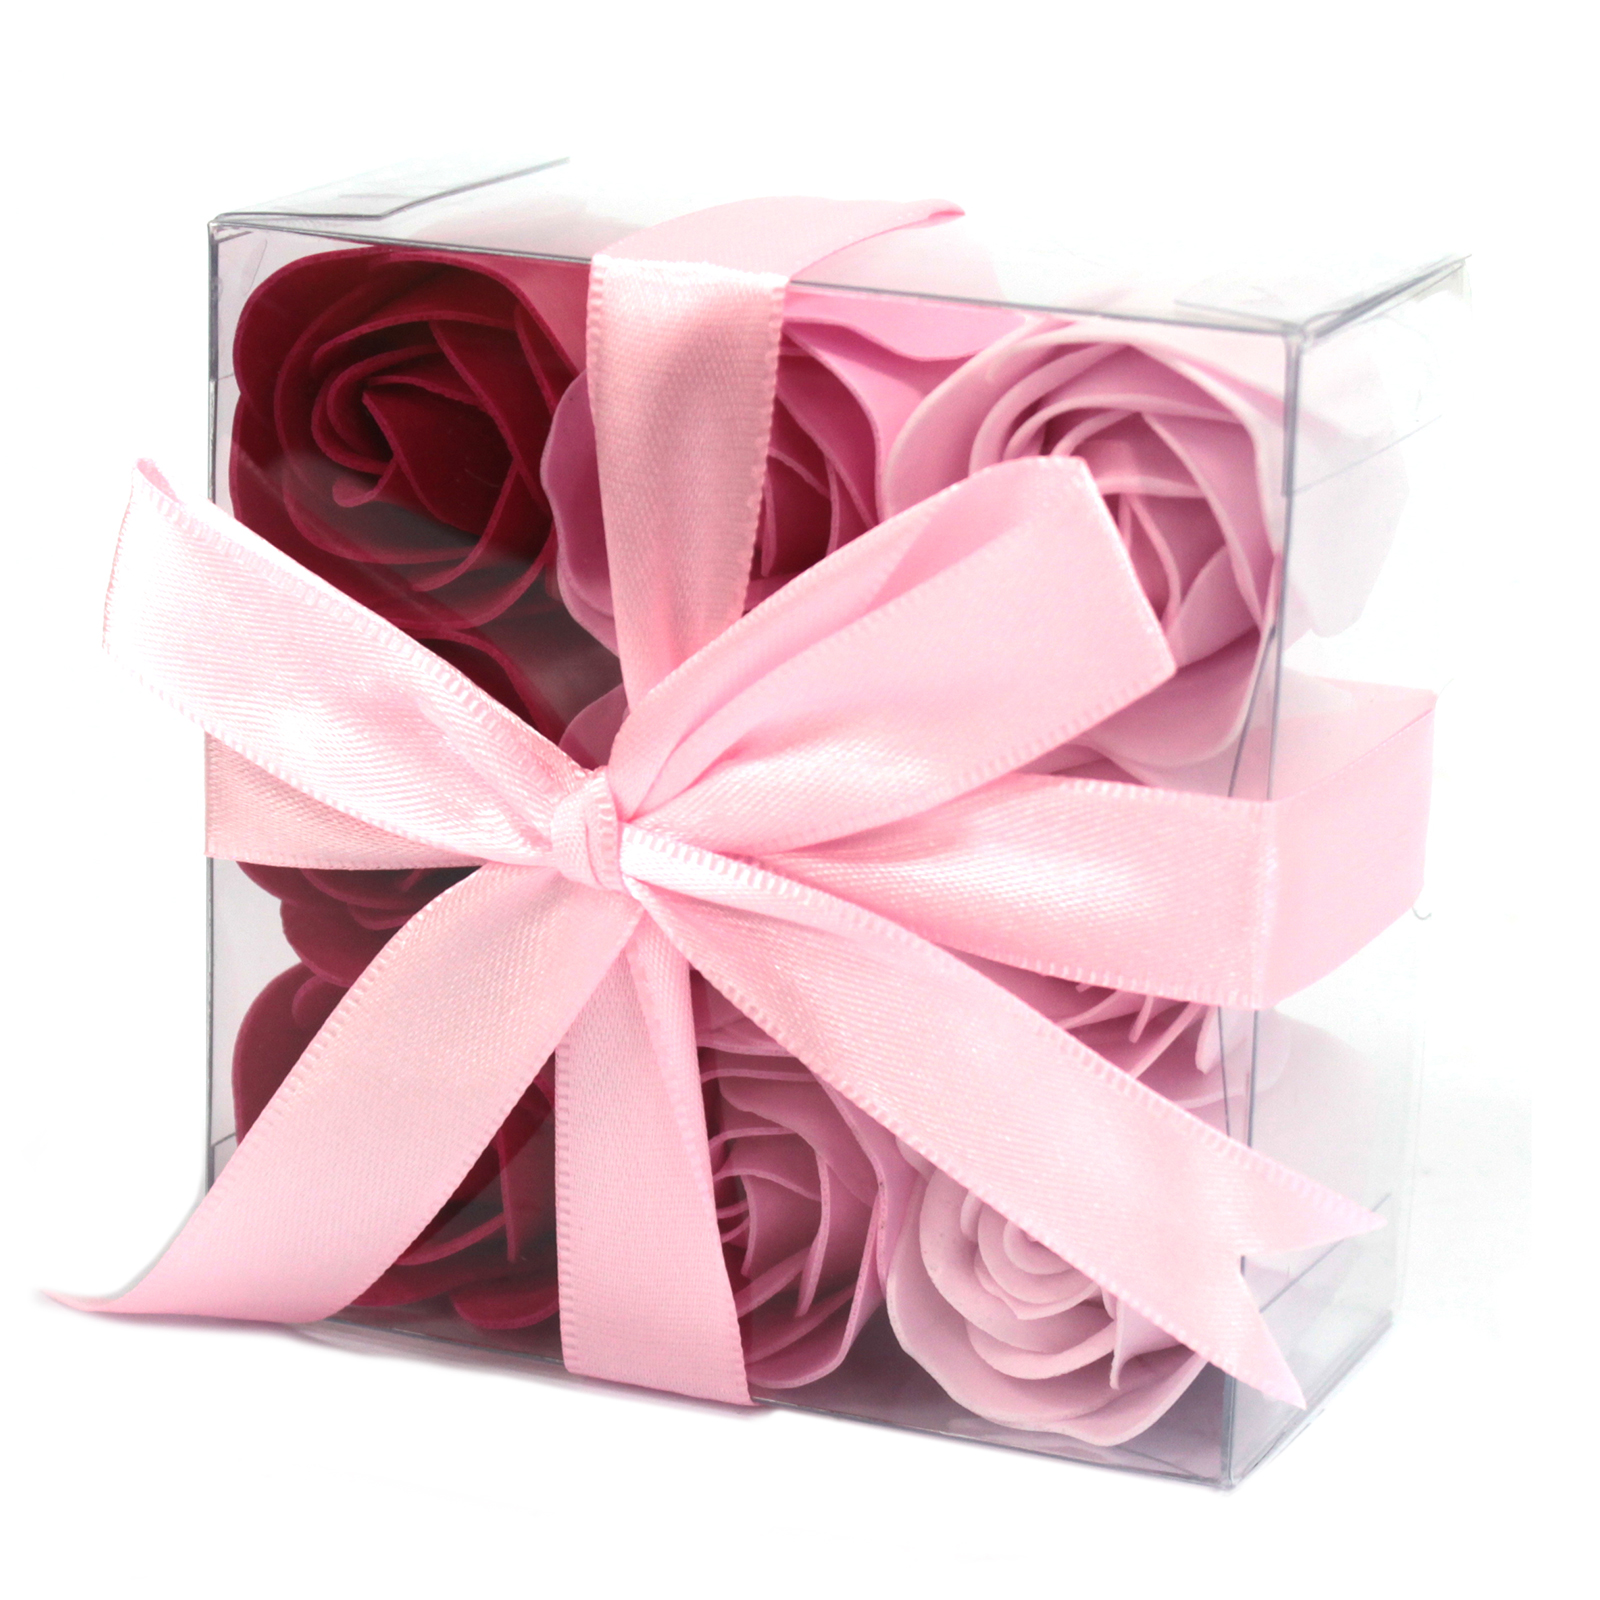 1x Set of 9 Soap Flowers - Pink Roses